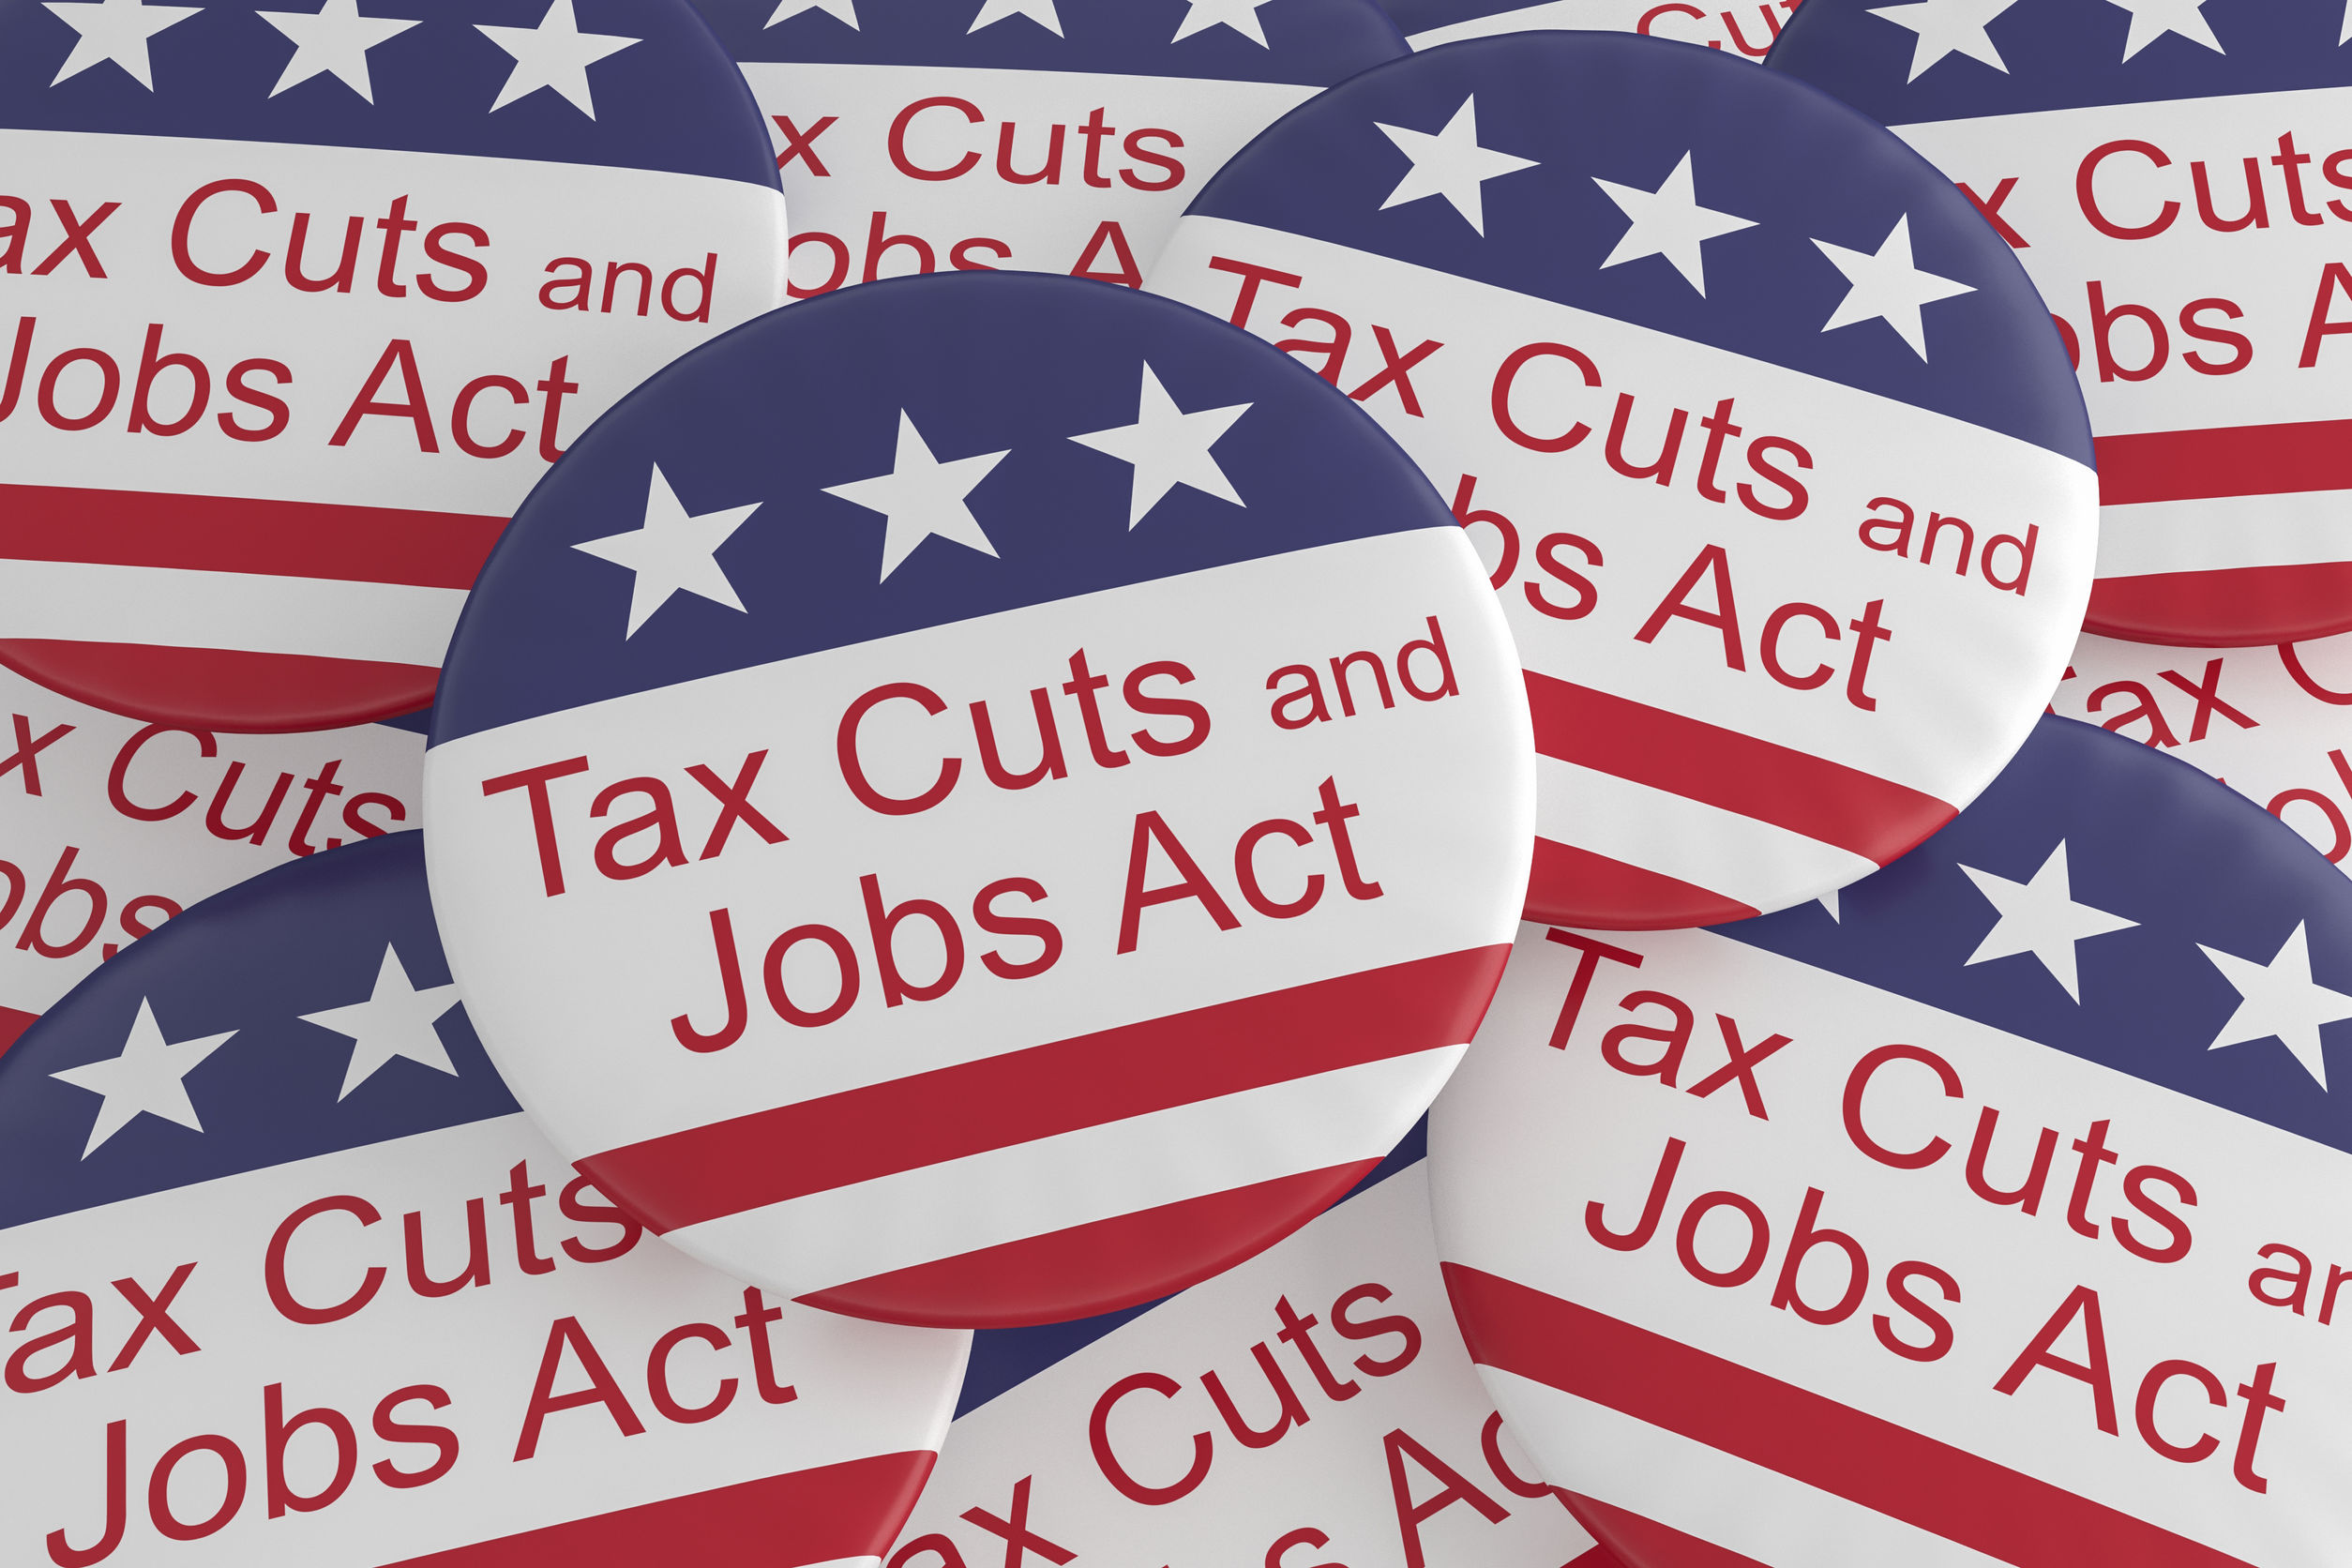 What the Tax Cuts and Jobs Act Means for Millennials